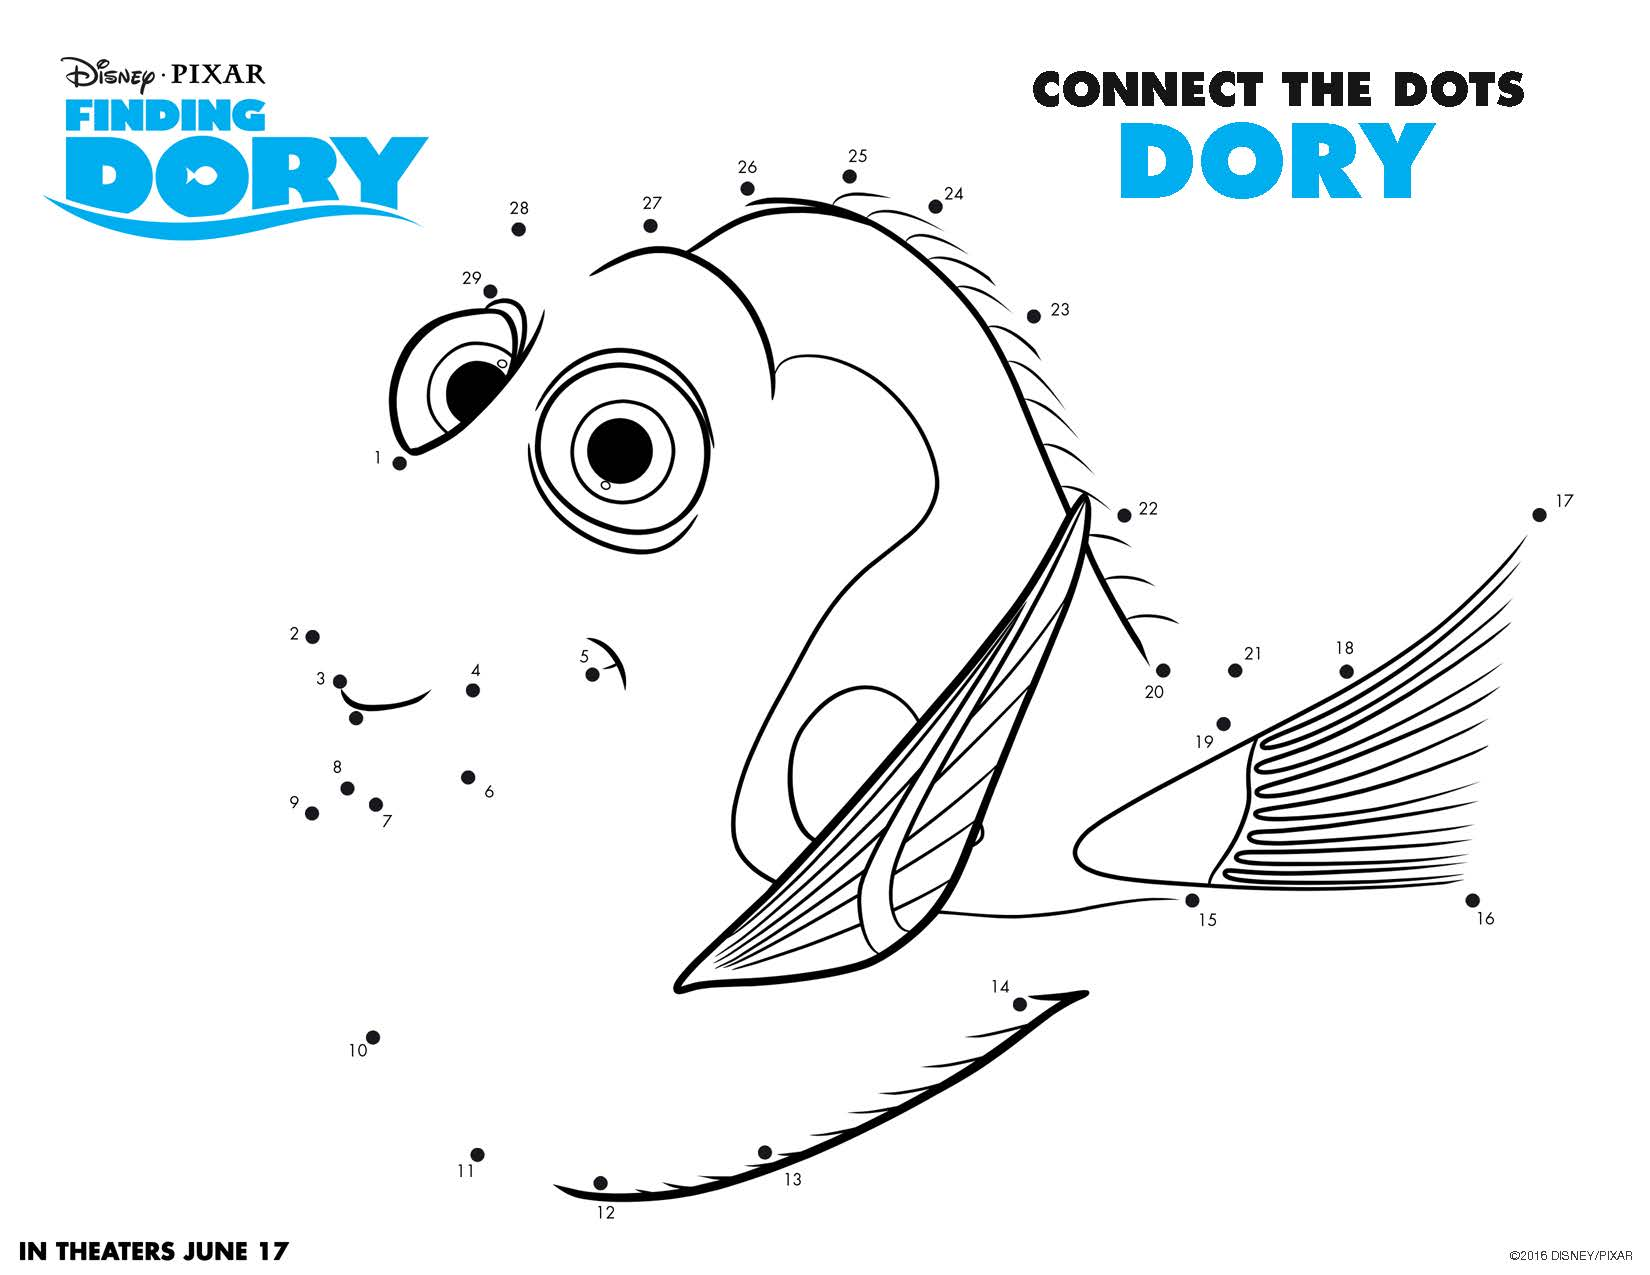 Print These Free Finding Dory Printables For Summer Fun!